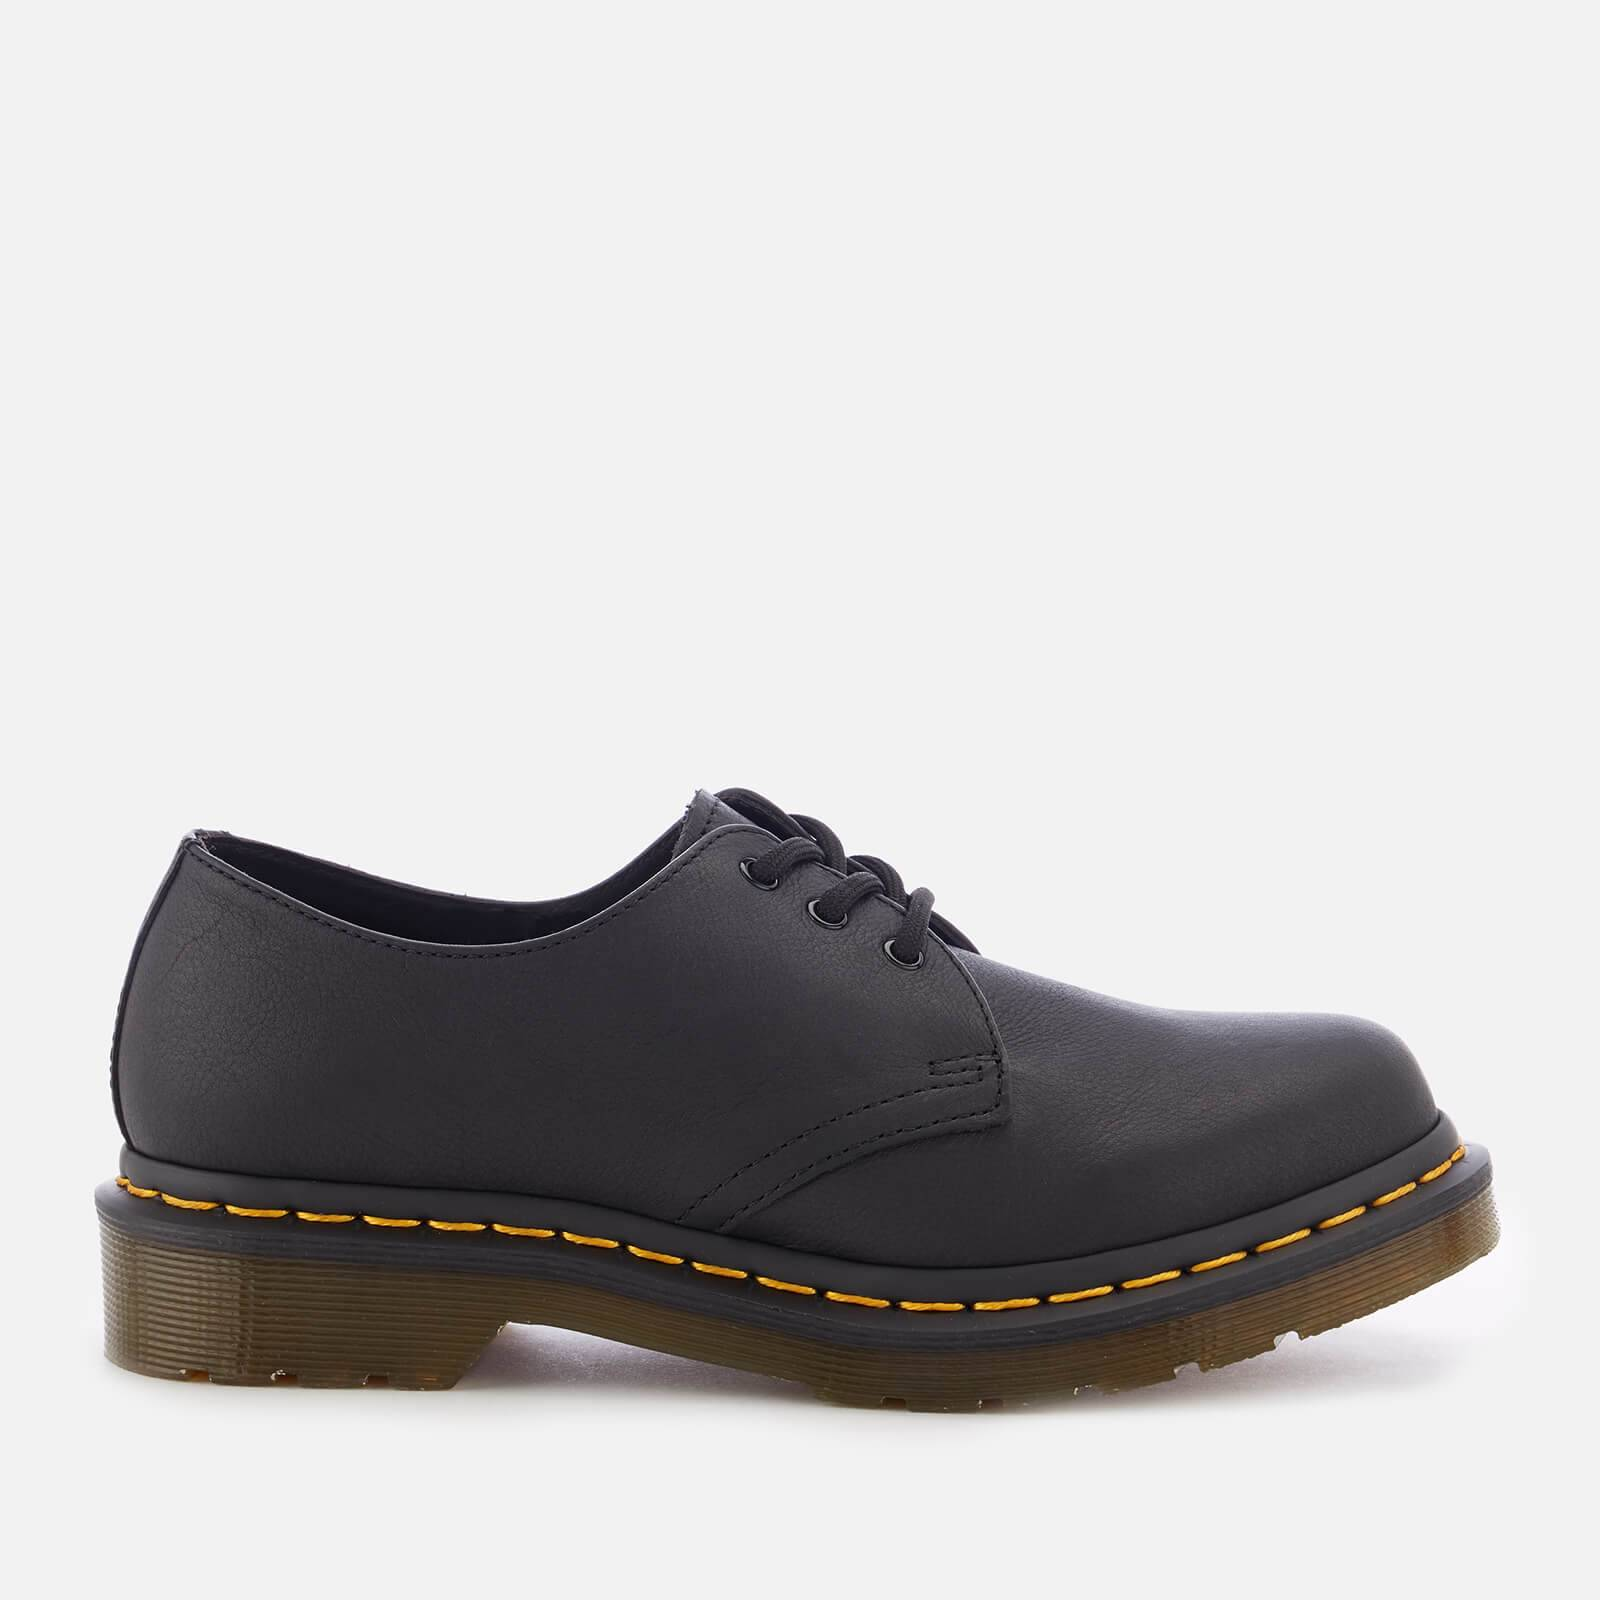 Dr. Martens Women's 1461 W Virginia Leather 3-Eye Shoes - Black - UK 6 - Black